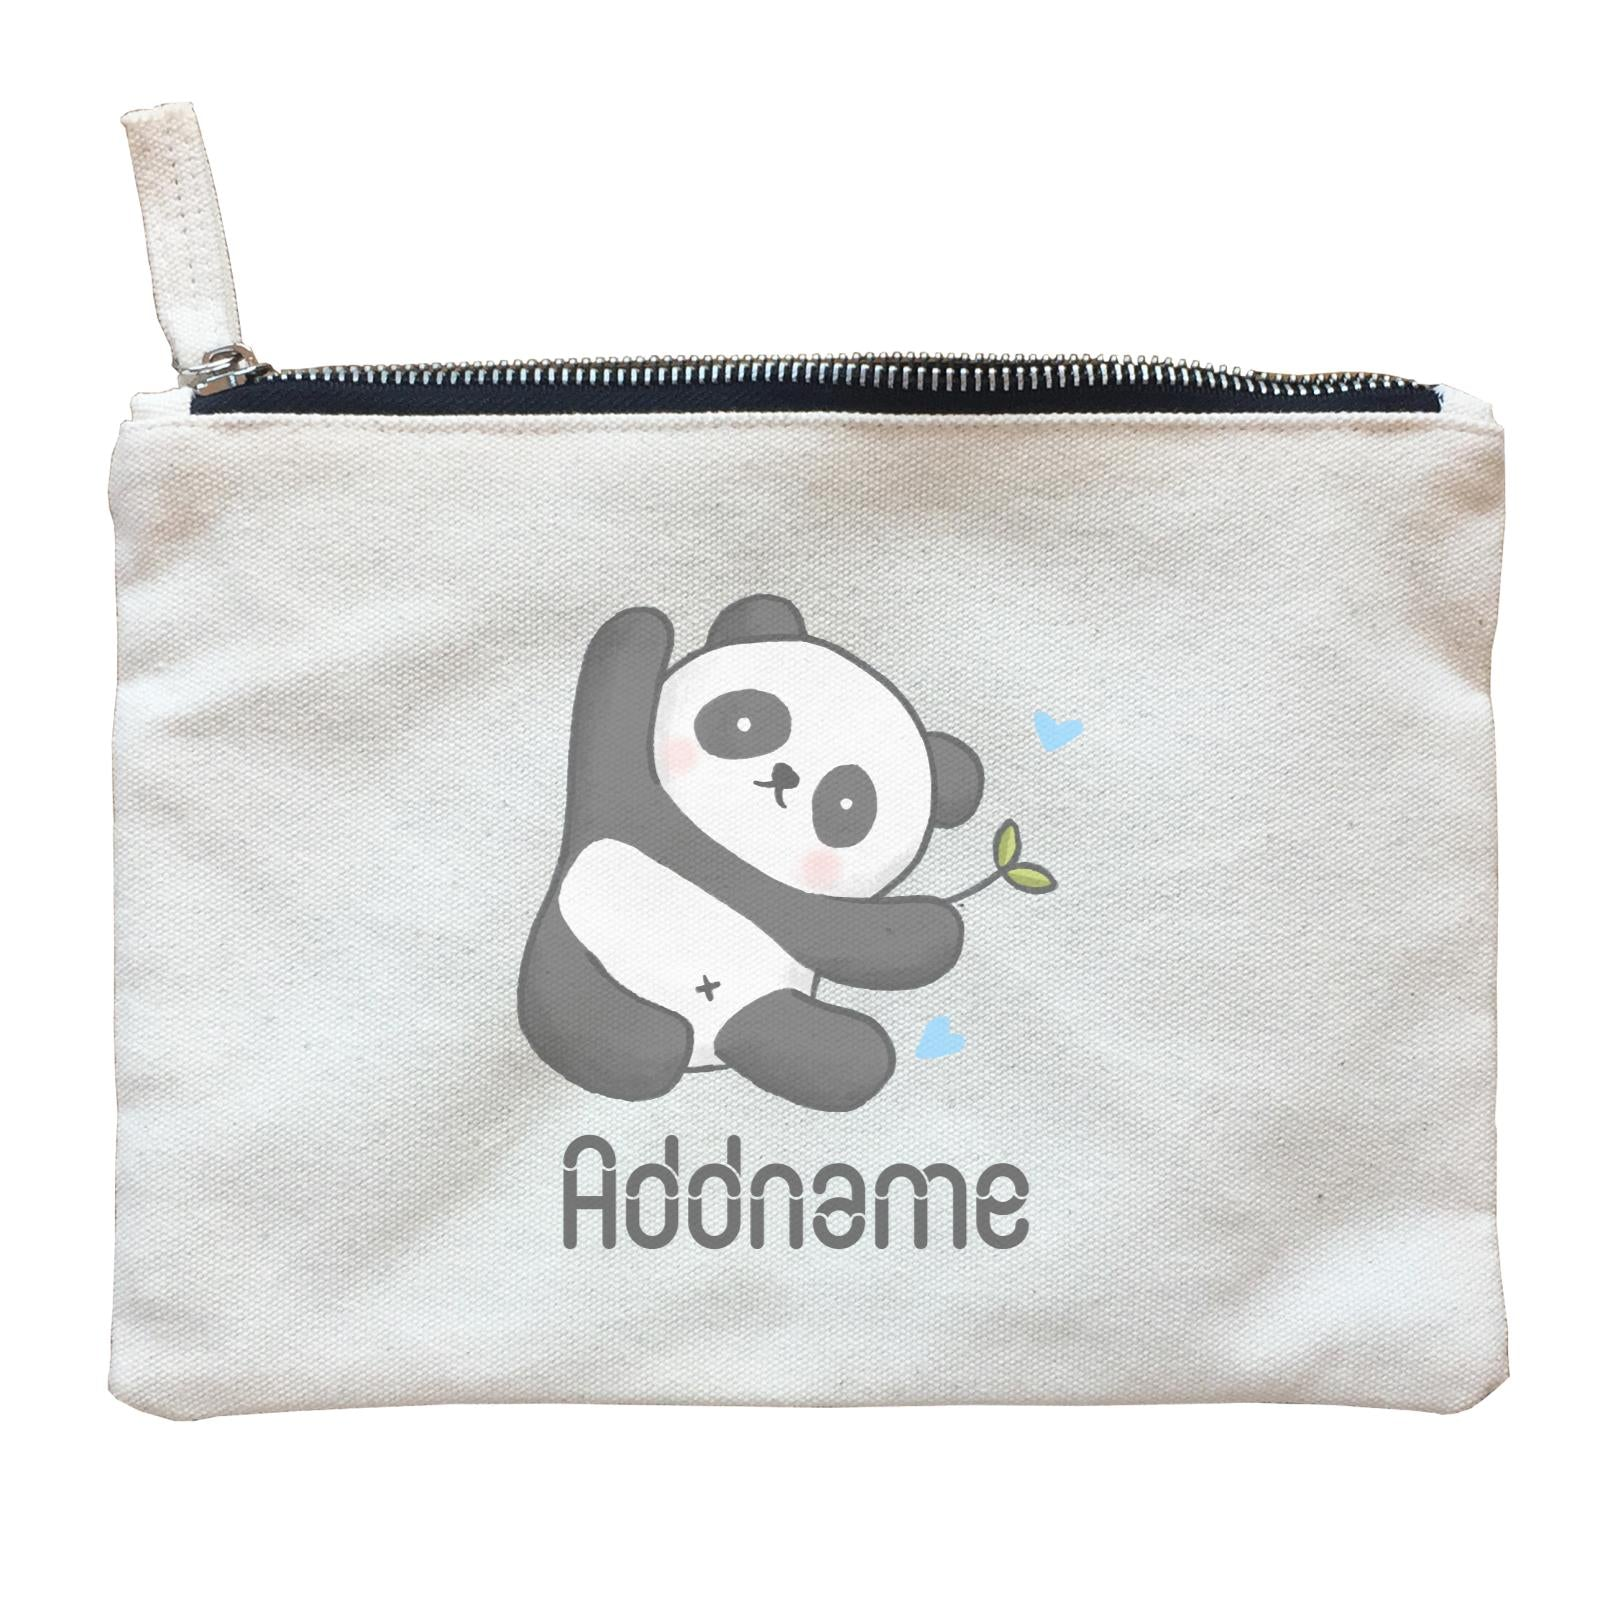 Cute Hand Drawn Style Panda Addname Zipper Pouch